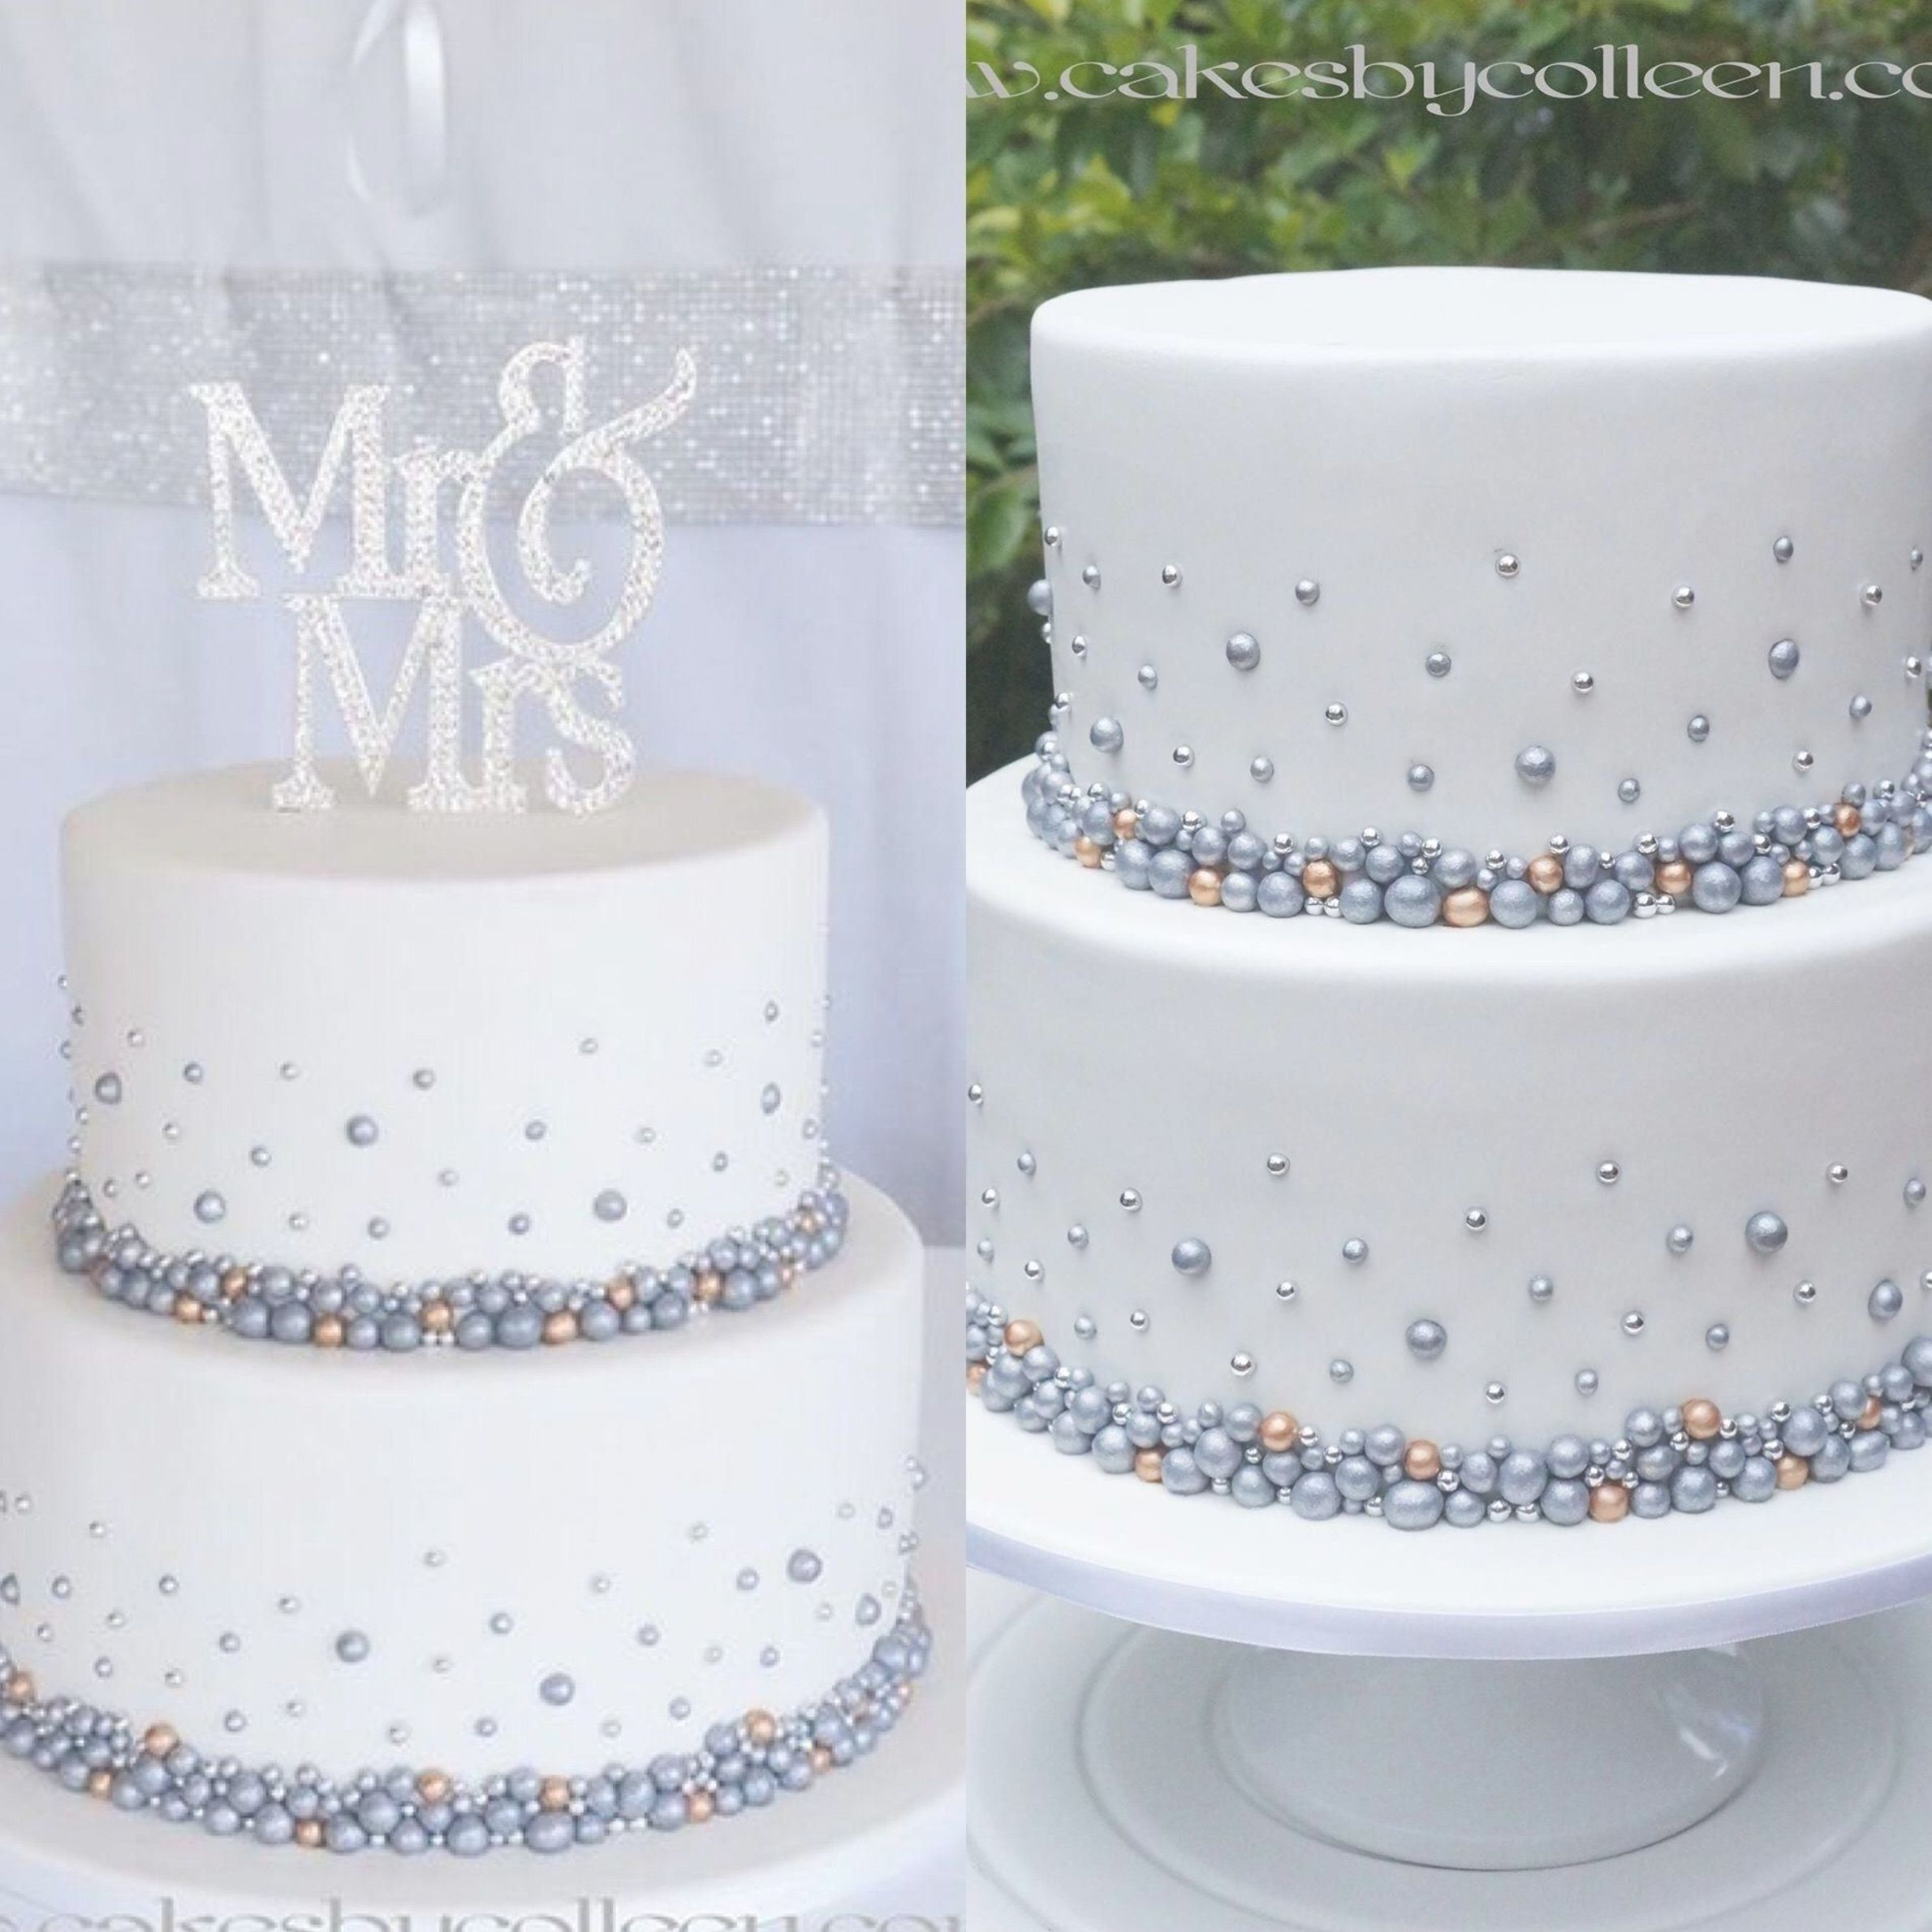 2 Tier Simple Wedding Cake Designs Addicfashion